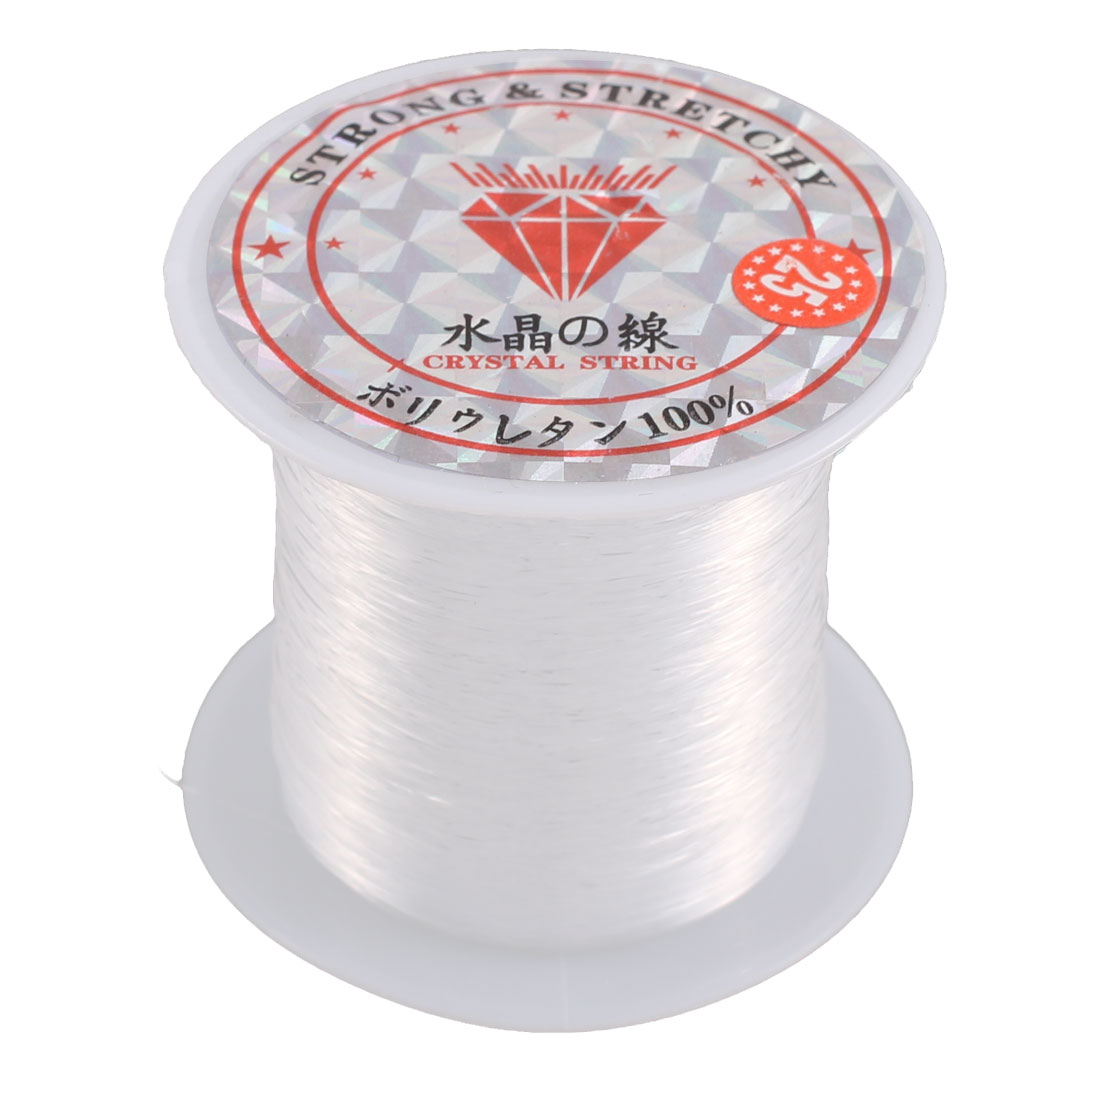 Bracelet Making String Beading Tool Thread Cord Roll Clear 120M Length